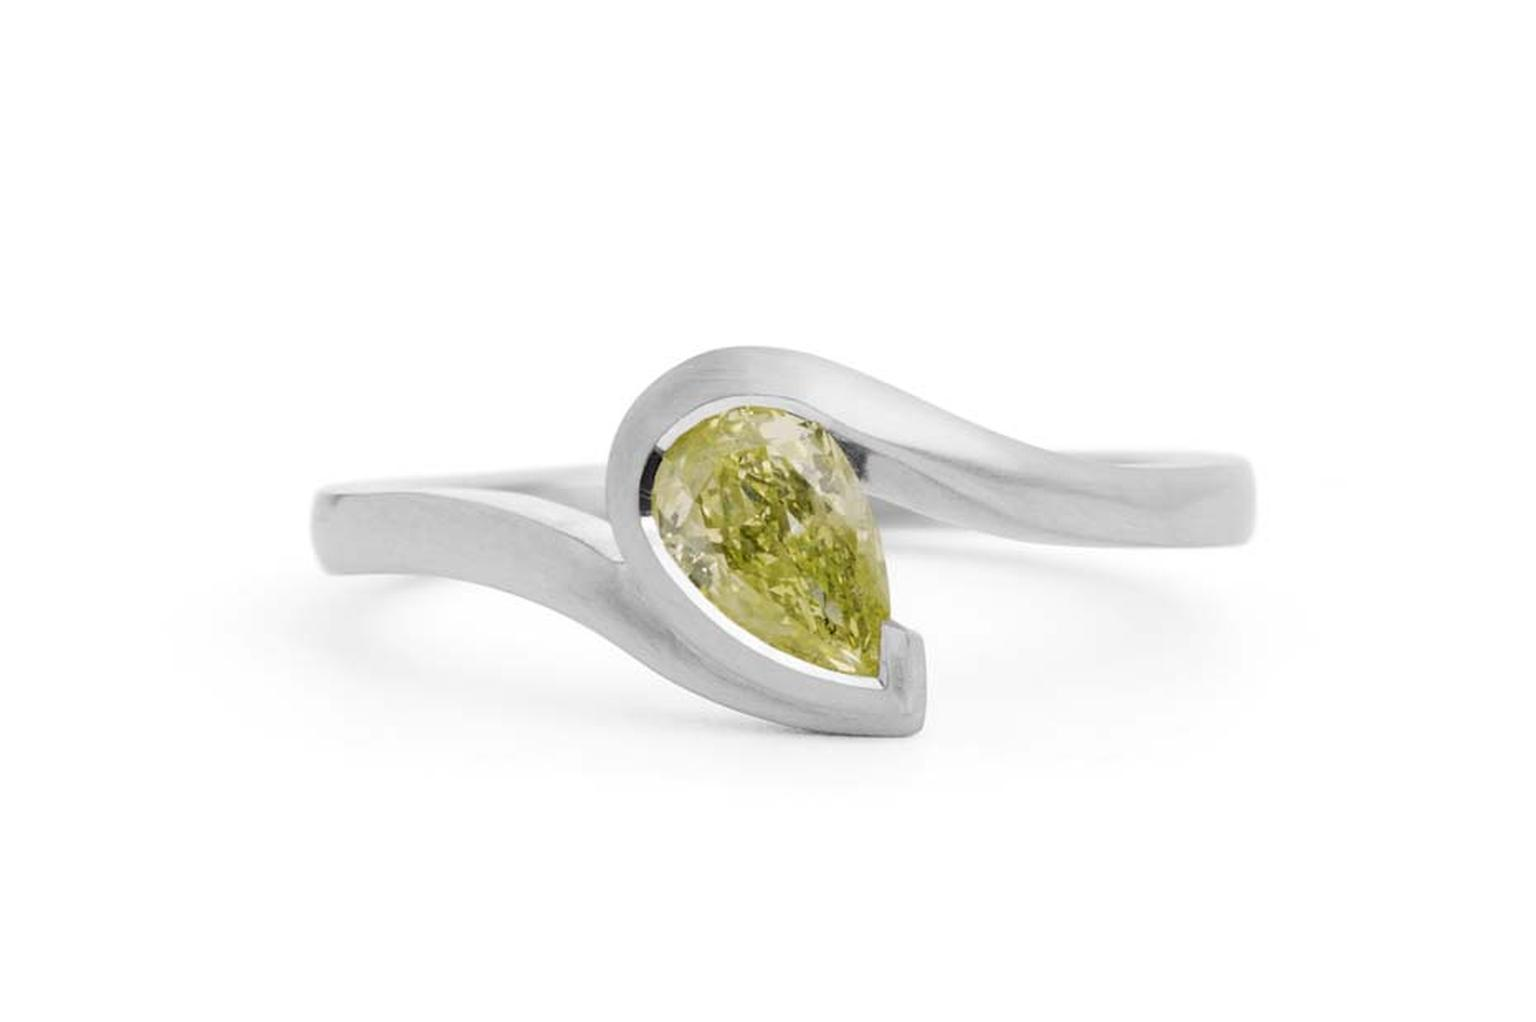 McCaul Goldsmiths Wave pear-shaped yellow diamond engagement ring (£2,800).